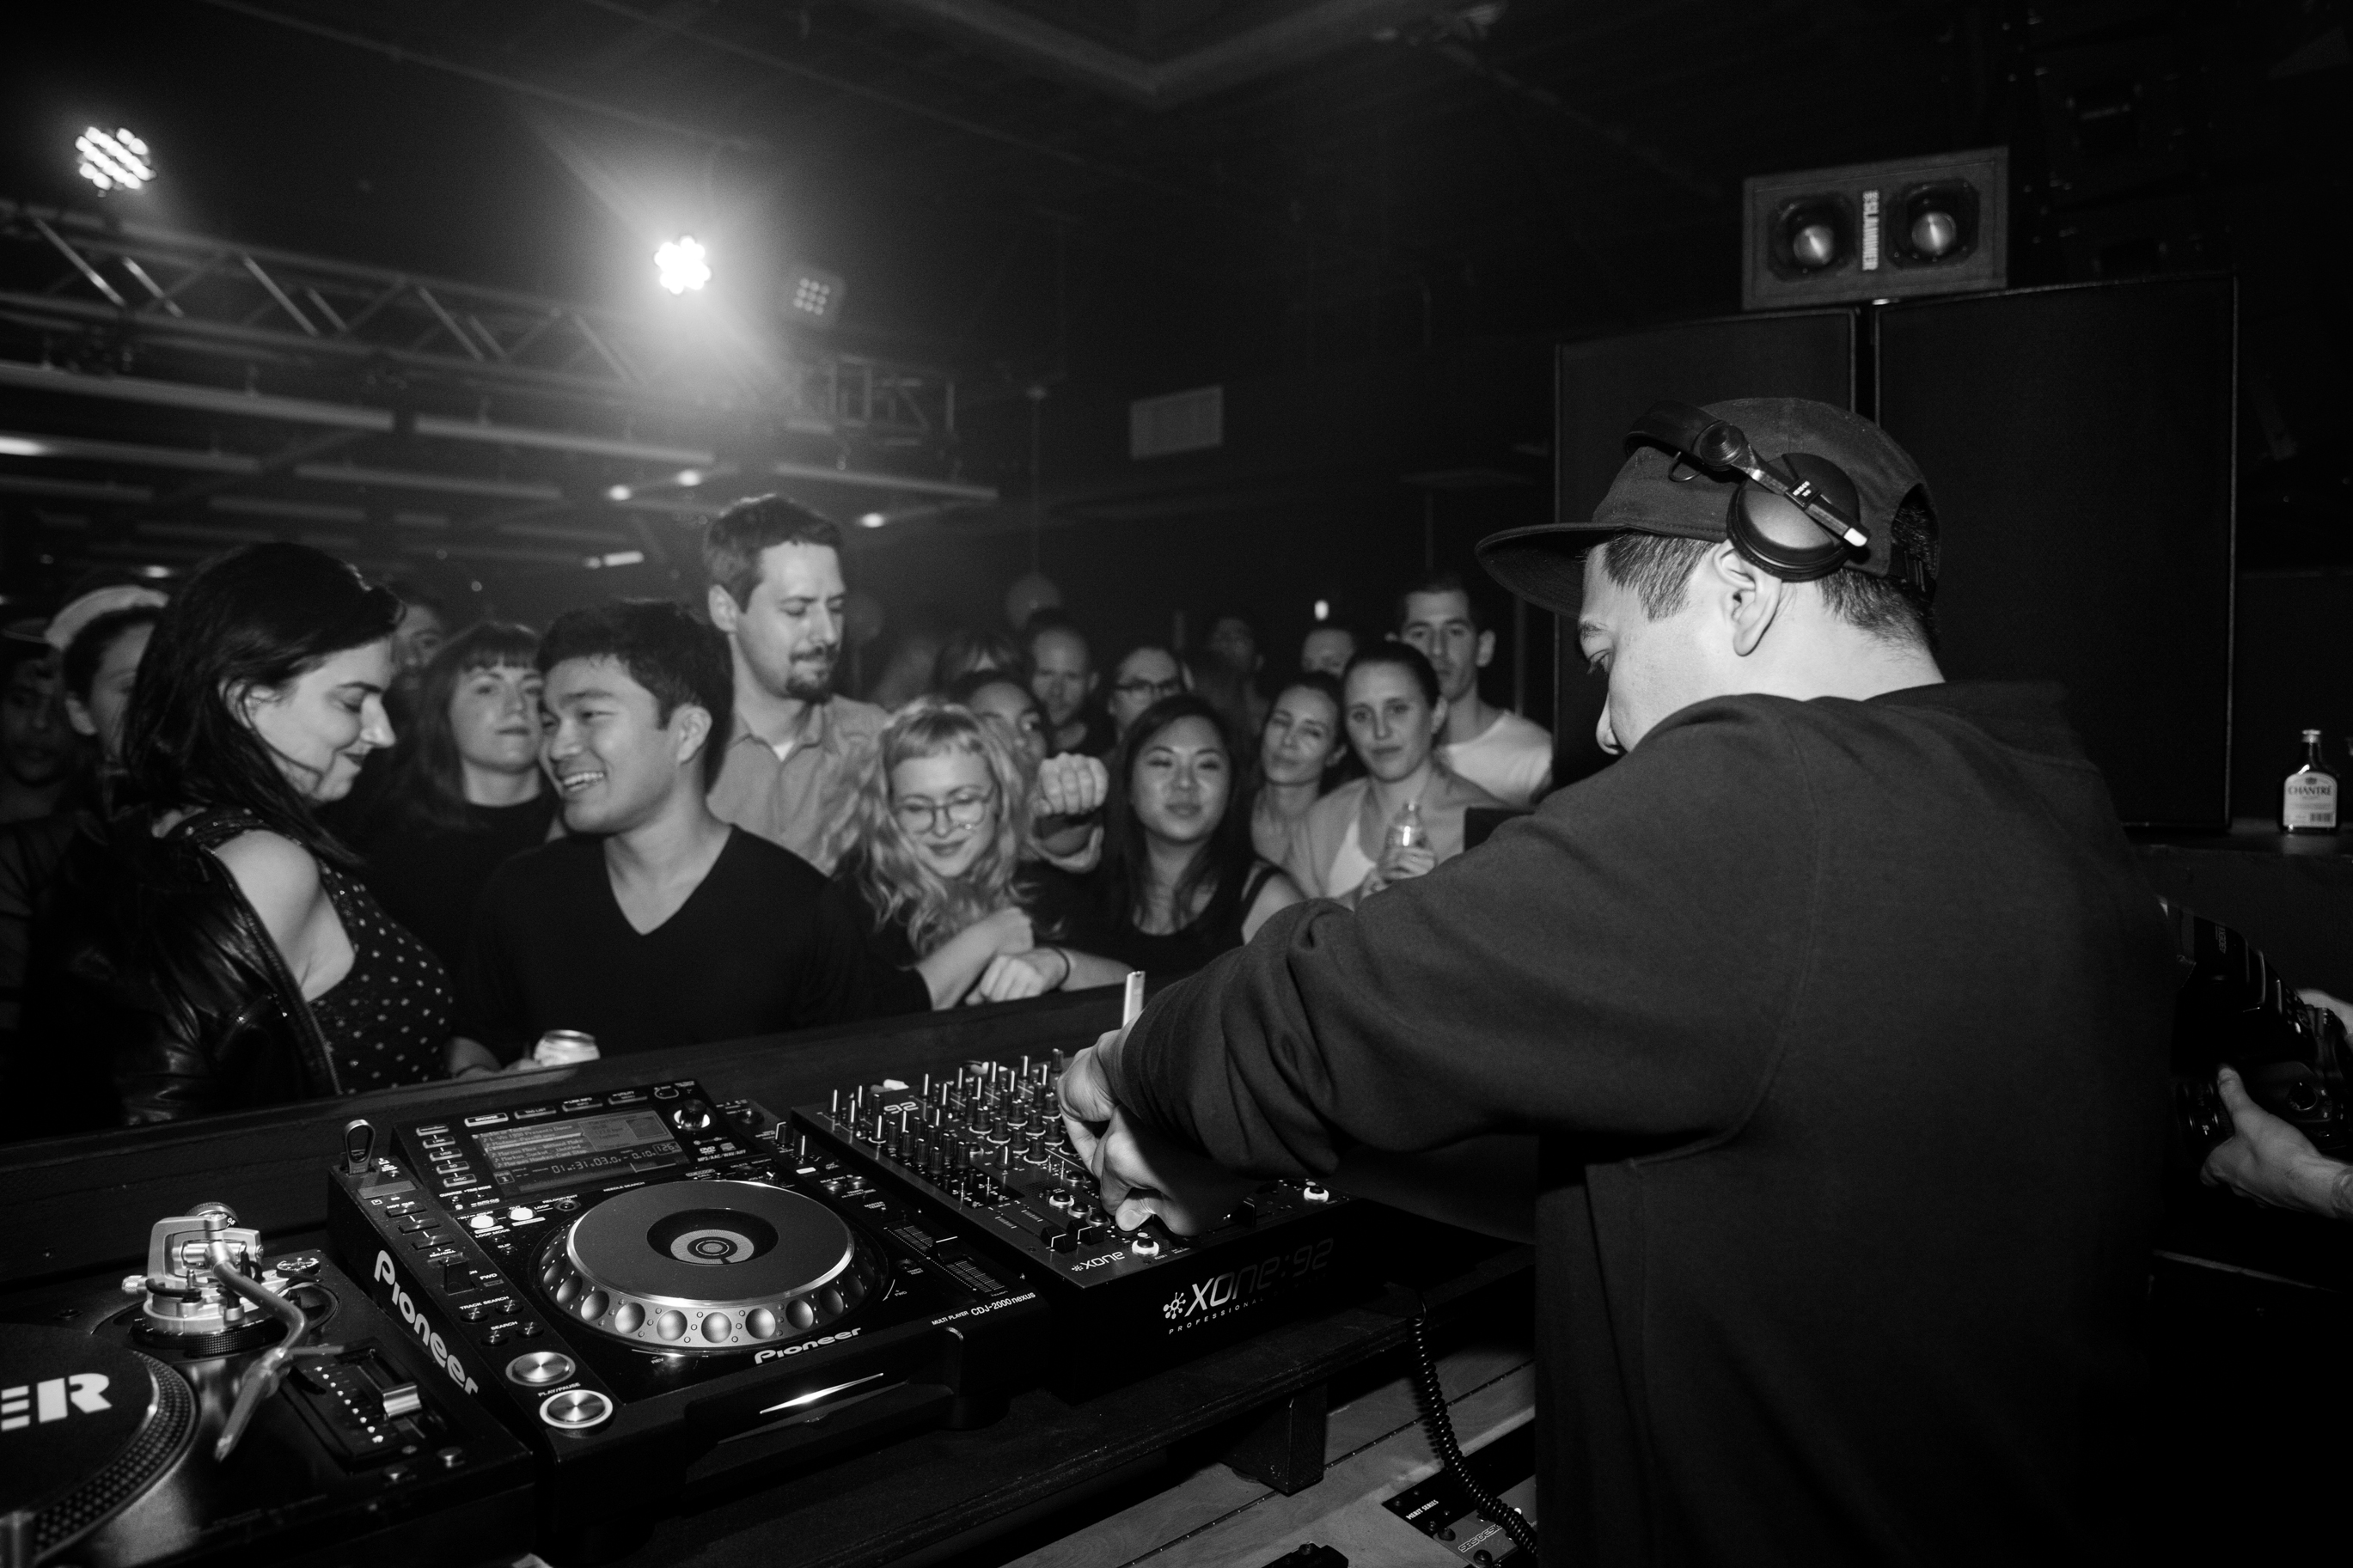 Mike Servito taking Analog BKNY on another type of acid journey.   Photo: Ross Figlerski